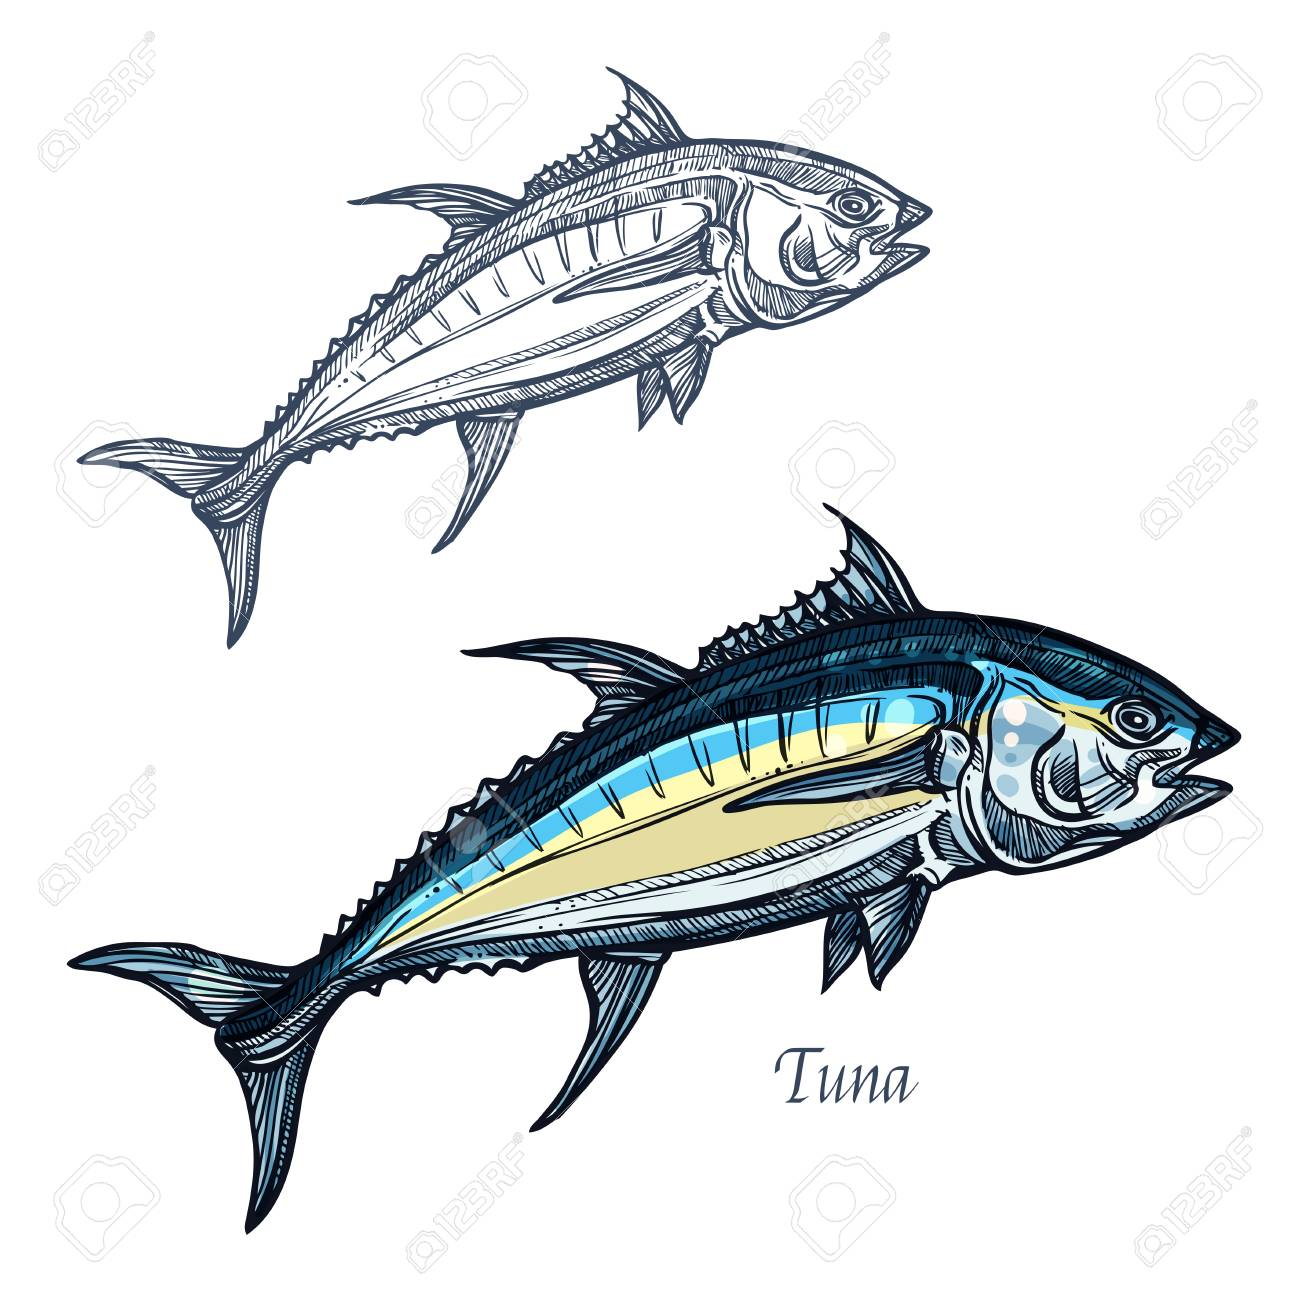 Tuna sketch vector fish icon isolated ocean mackerel fish species isolated ocean mackerel fish species isolated symbol for seafood biocorpaavc Gallery